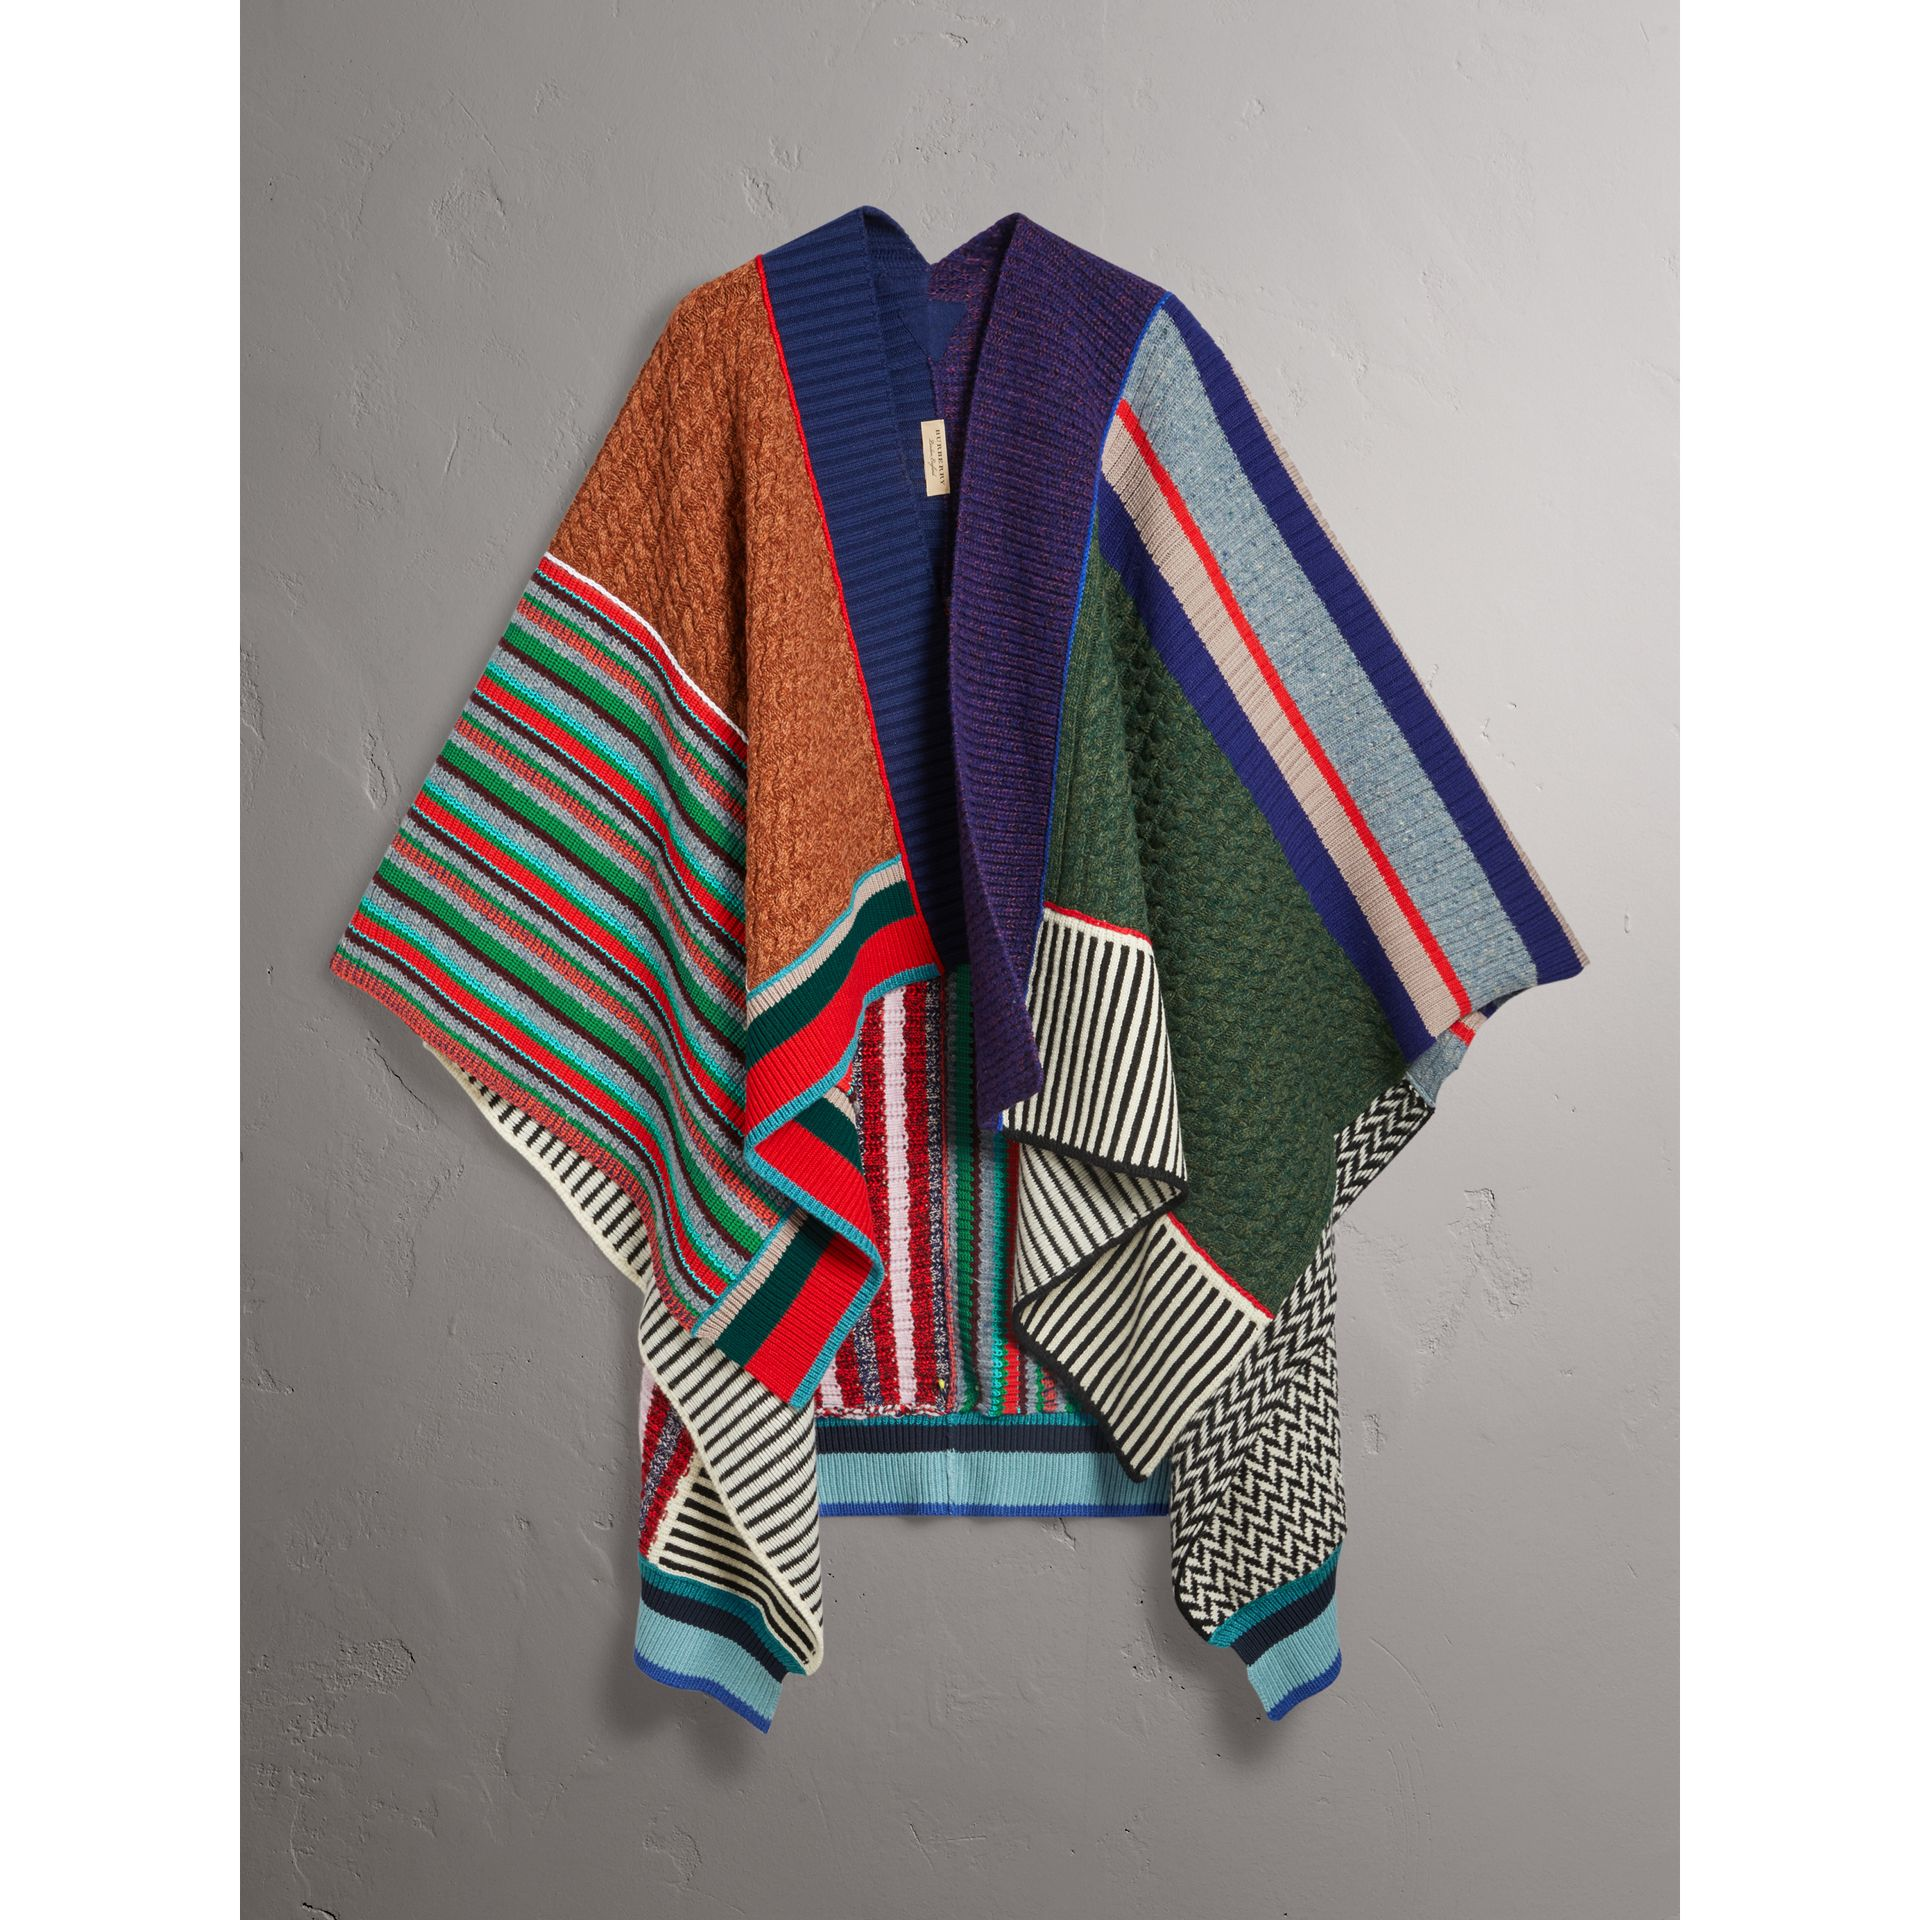 Wool Cashmere Blend Patchwork Poncho in Multicolour - Women | Burberry Hong Kong - gallery image 3